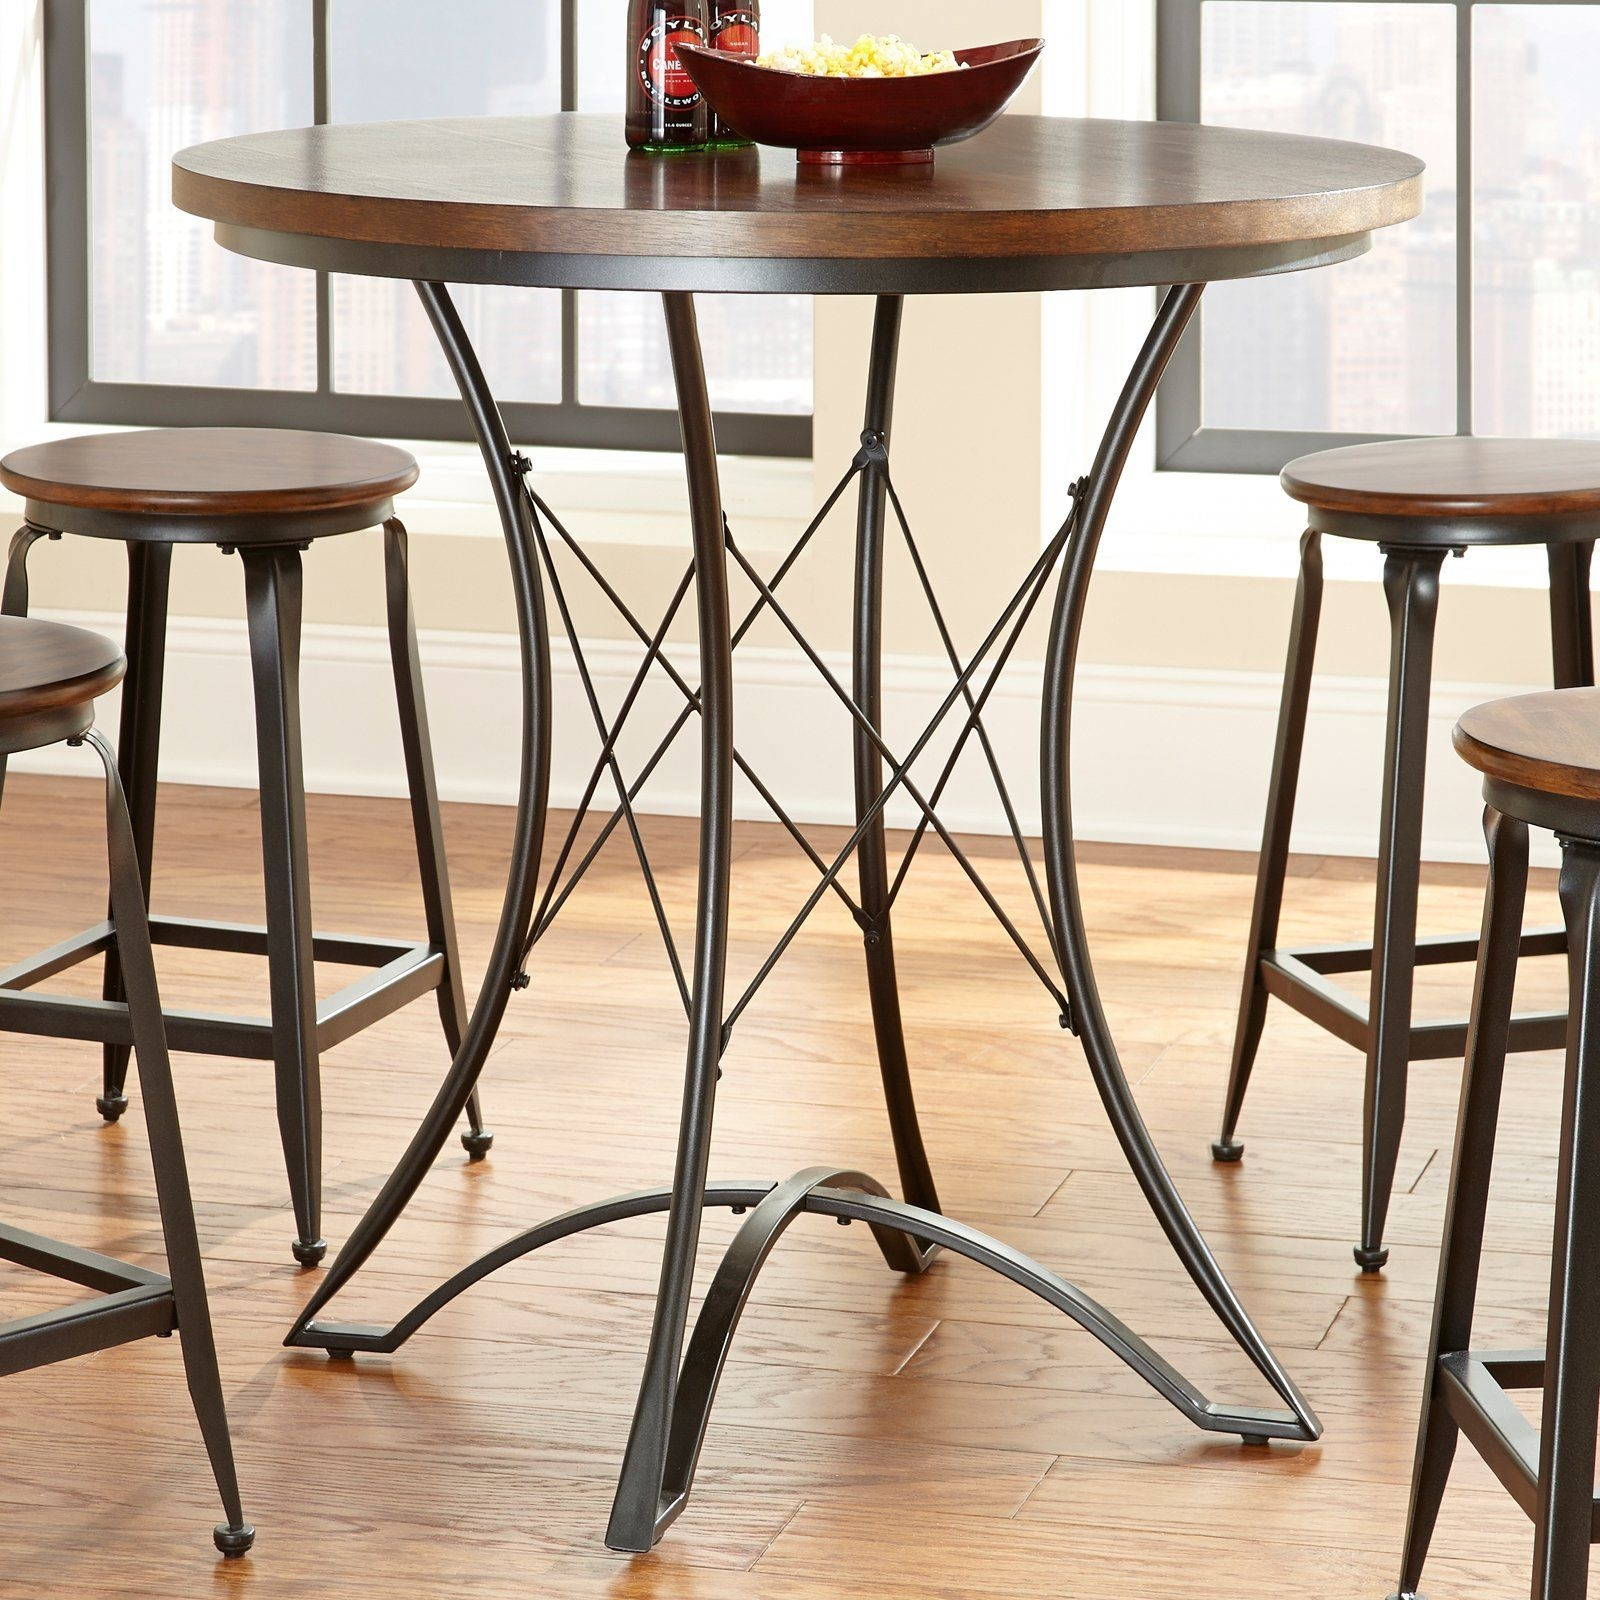 Round Bar Height Dining Table Ideas On Foter